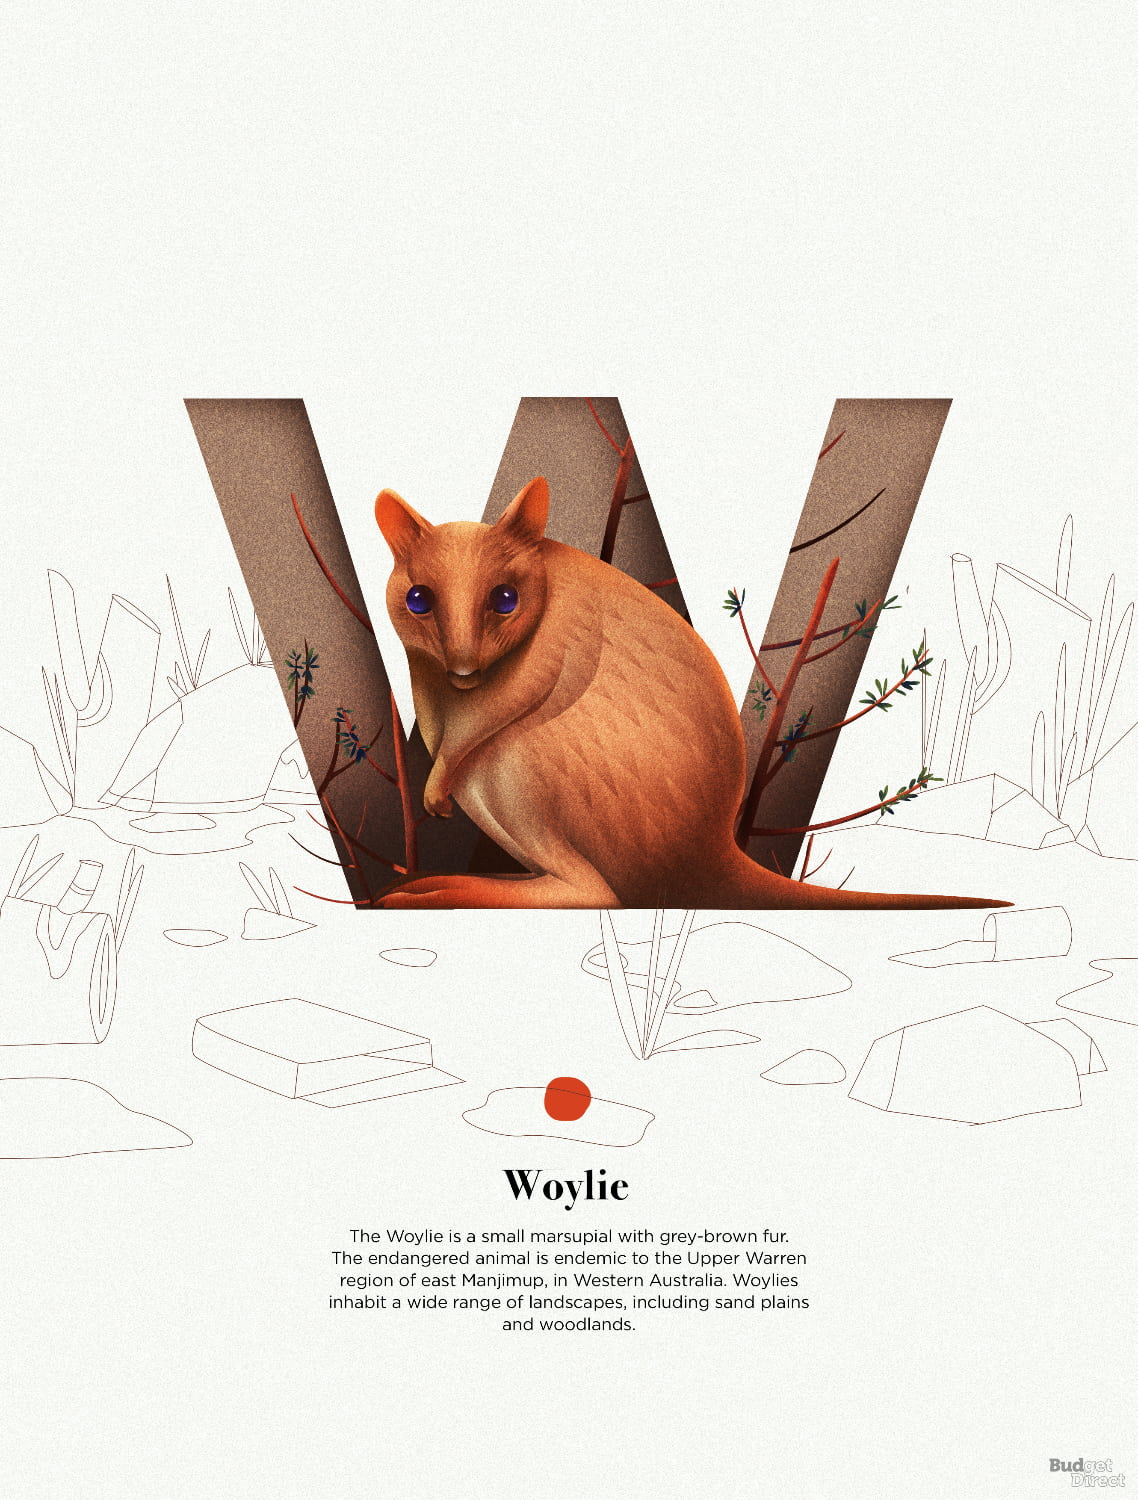 W is for Woylie